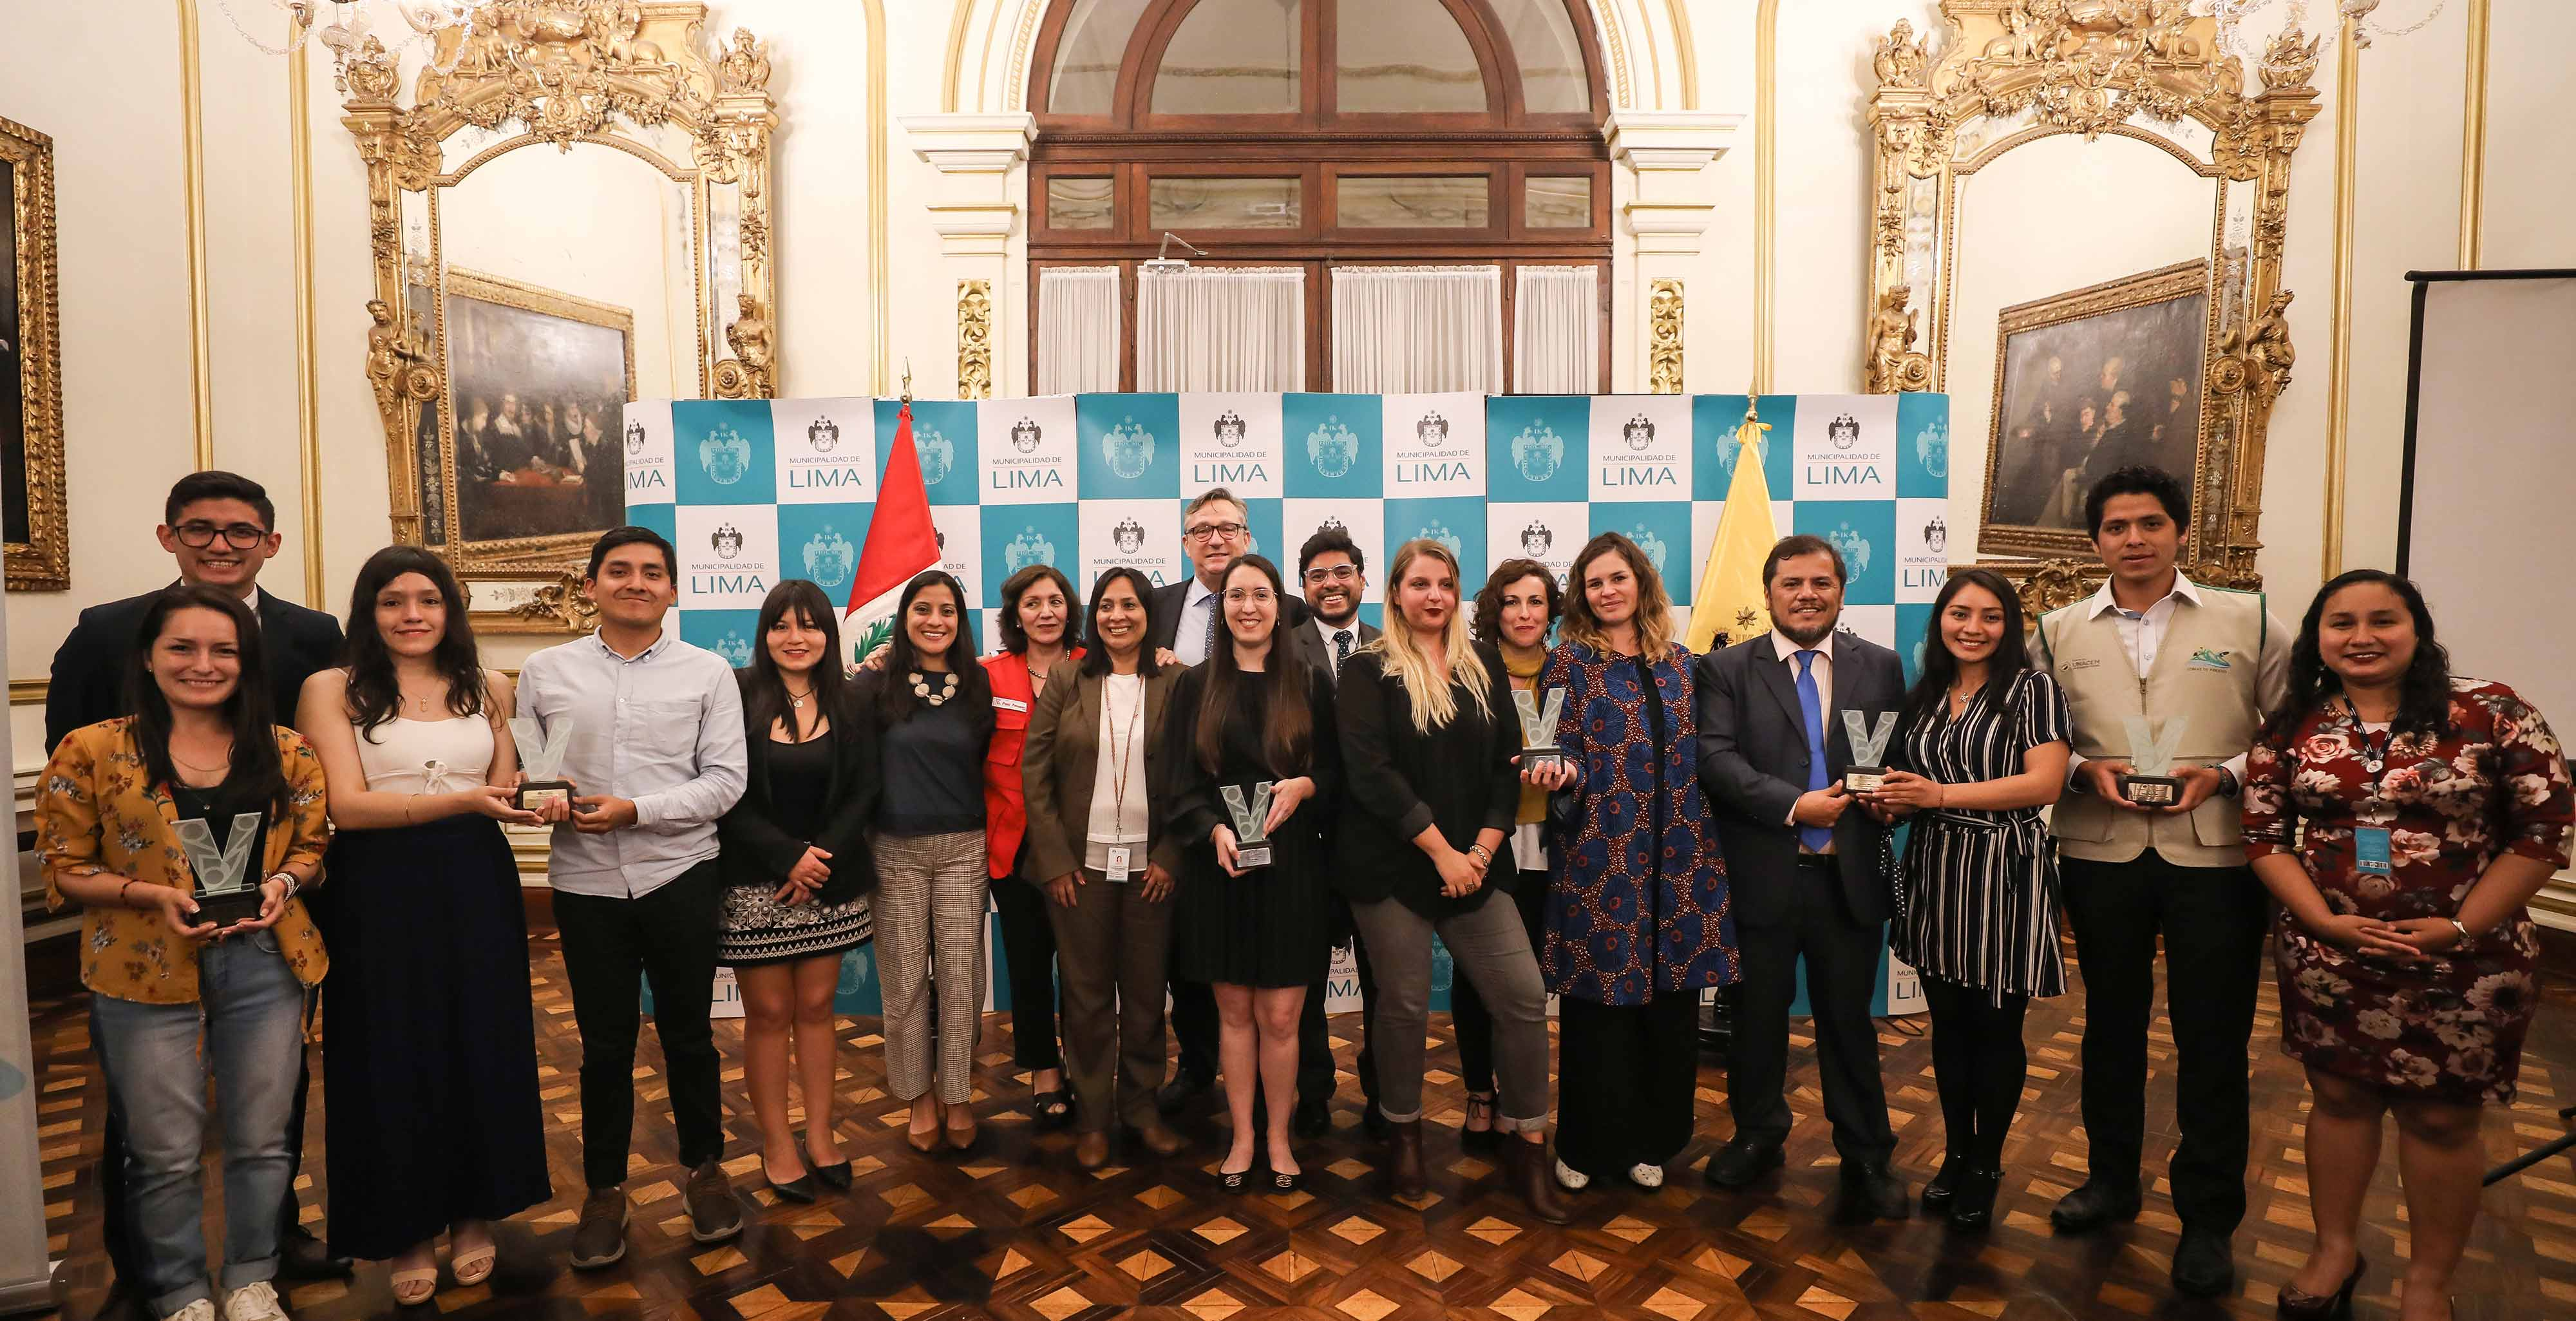 Olivier Adam, Executive Coordinator of the United Nations Volunteers (UNV) programme, celebrated IVD in Peru, joining a national event that brought together volunteers from across the country.